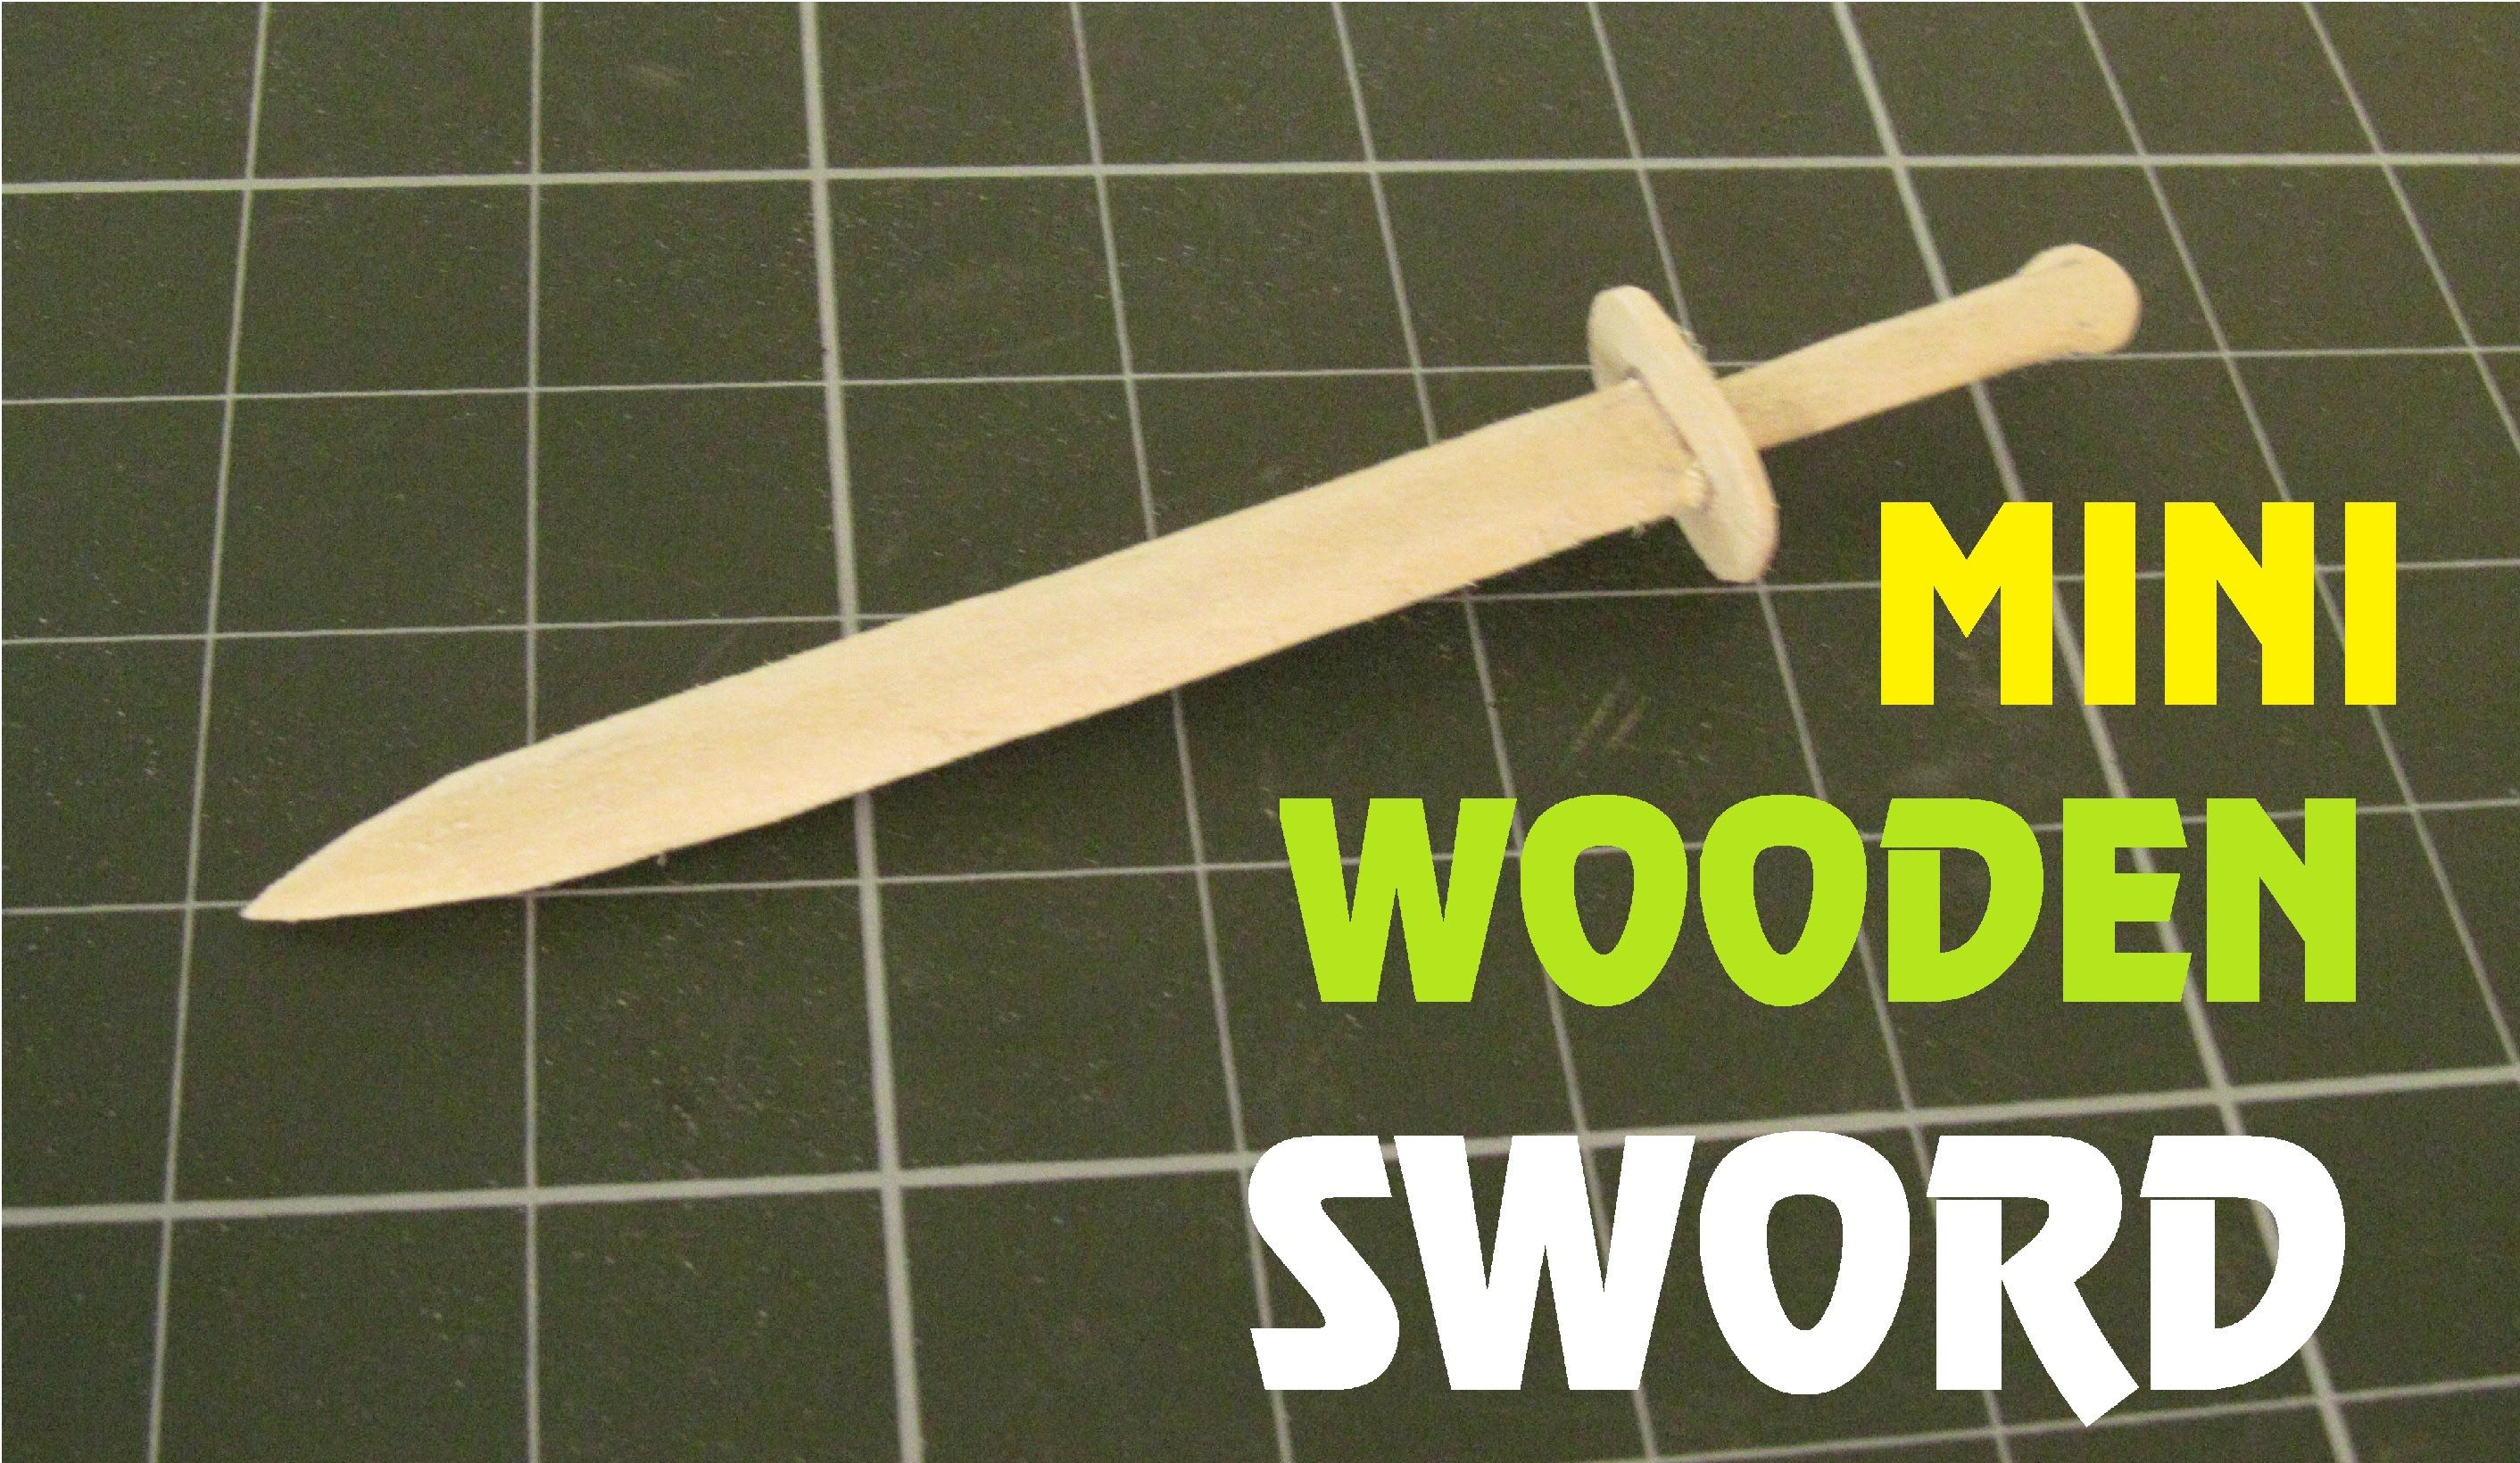 How To Make A Mini Wooden Sword Using Popsicle Stick